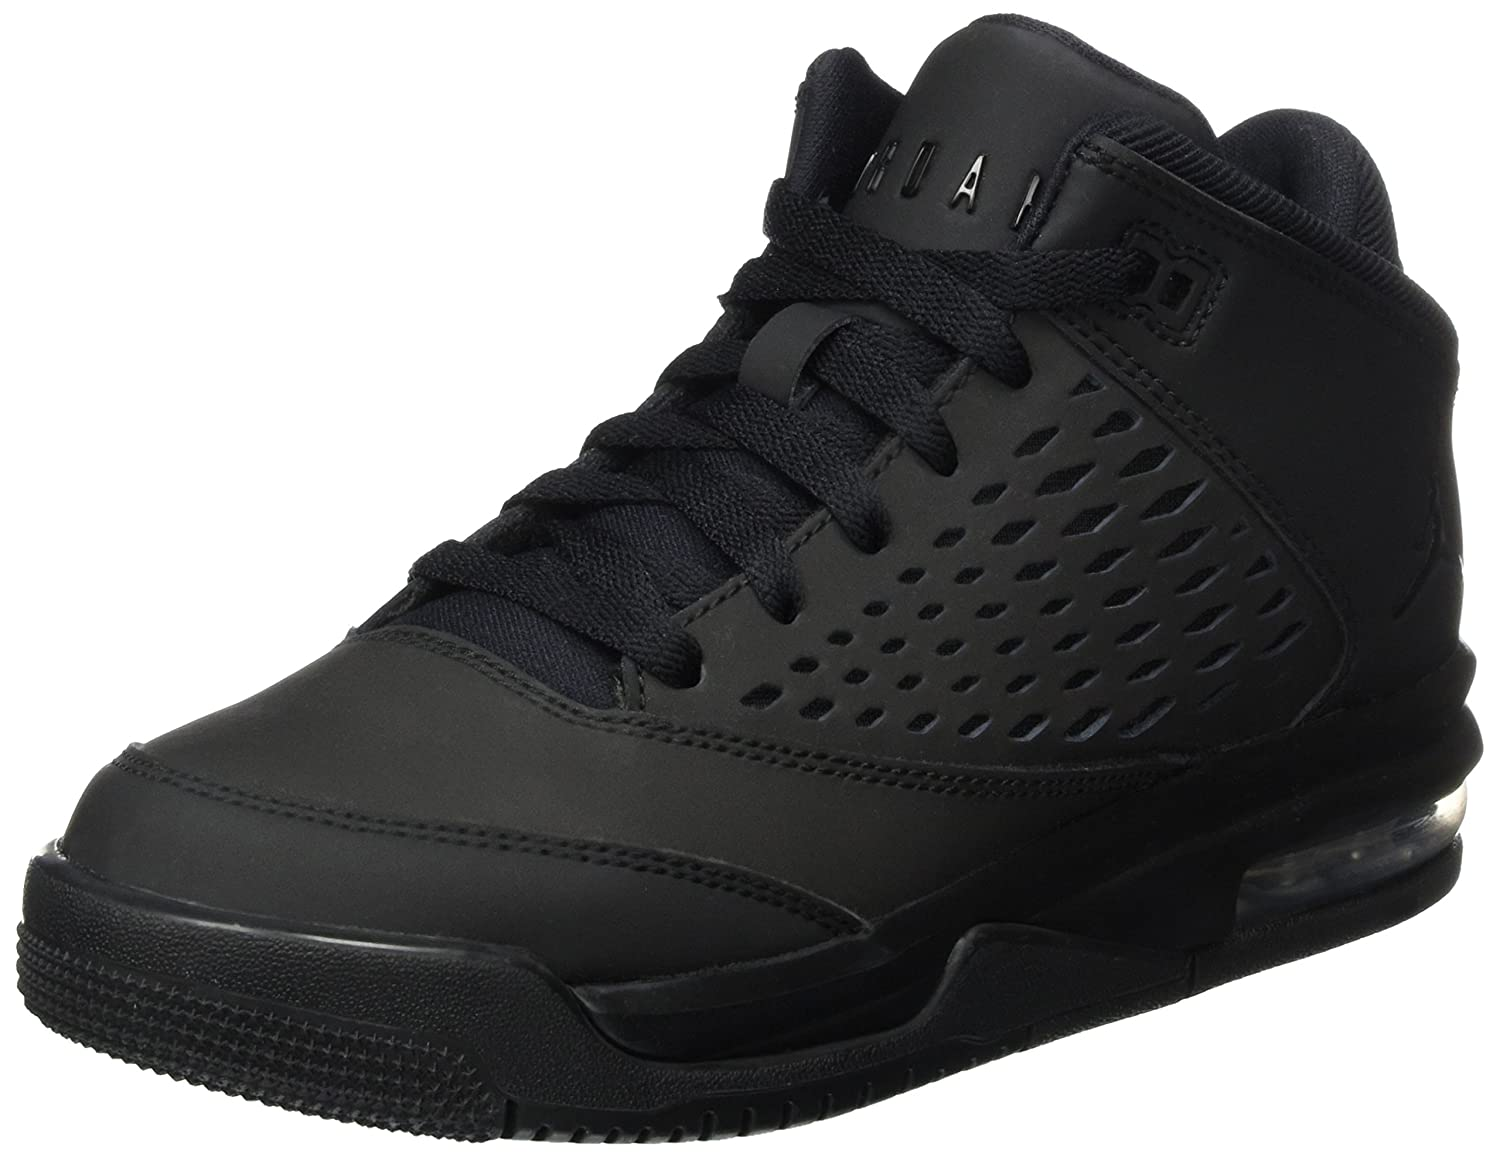 new styles 4d98e 4c82c Nike Jordan Flight Origin 4 BG, Chaussures de Basketball Fille